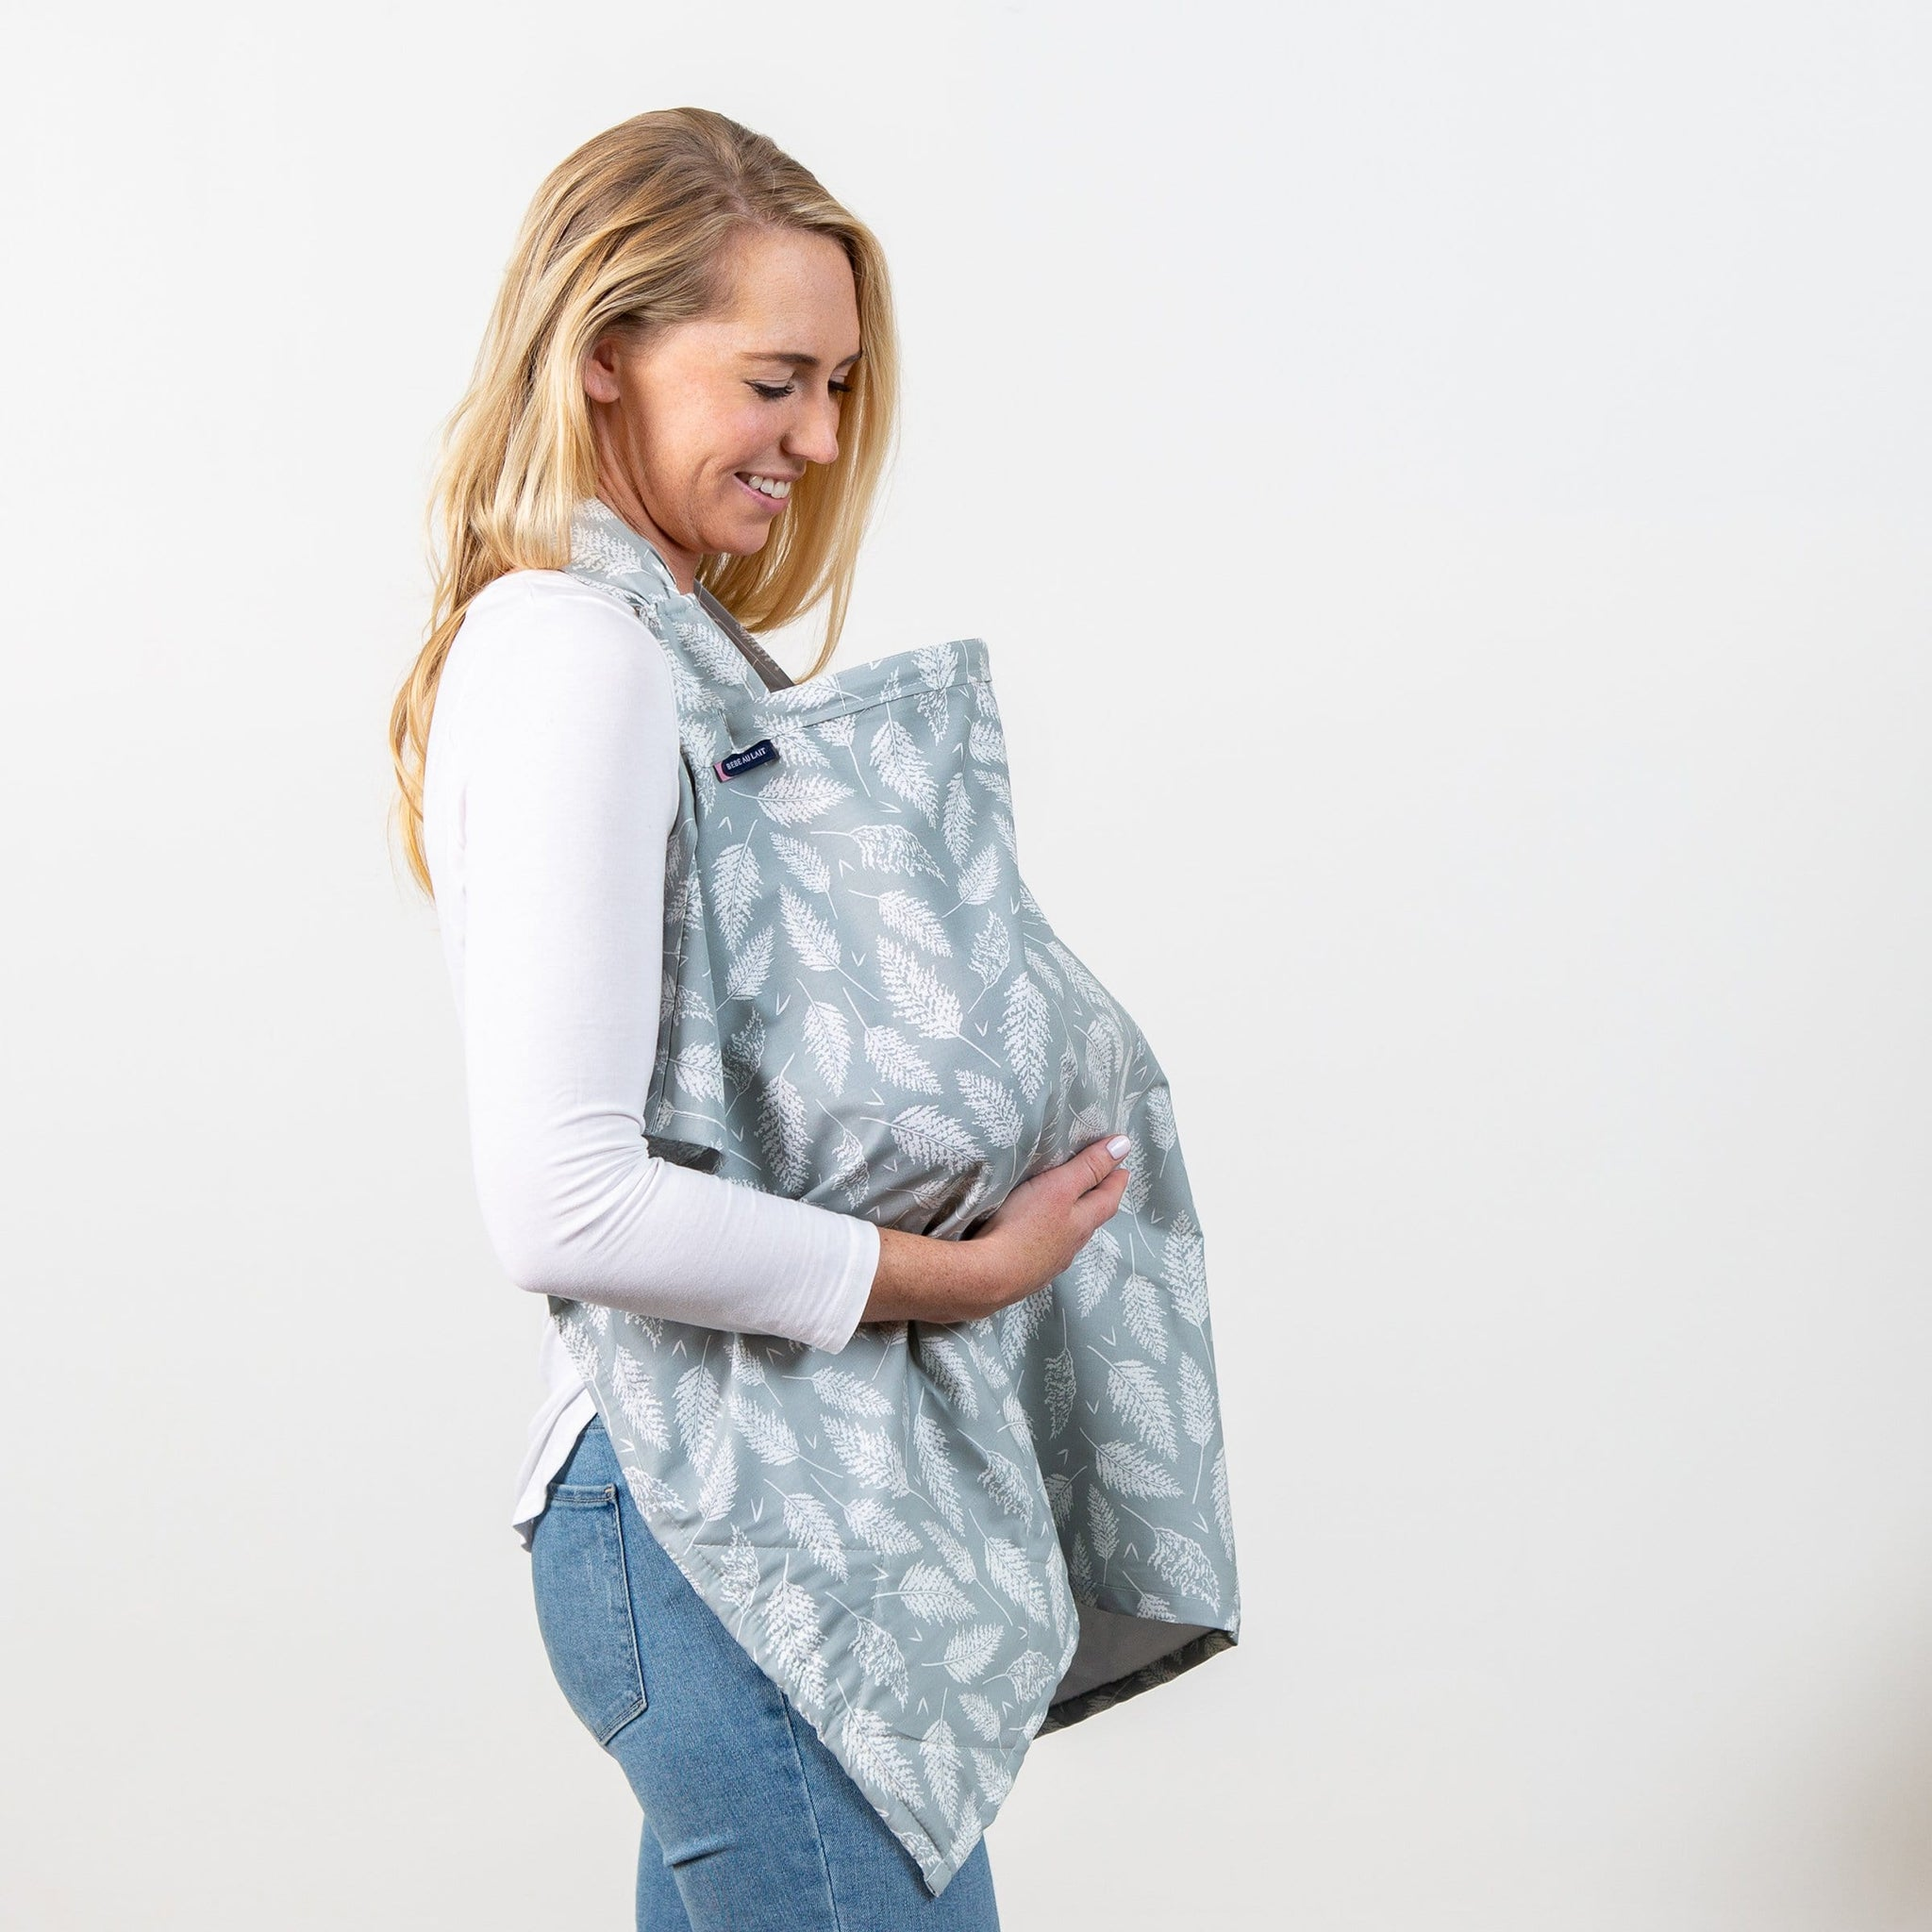 Bebe Au Lait Premium Cotton Nursing Cover-Fern